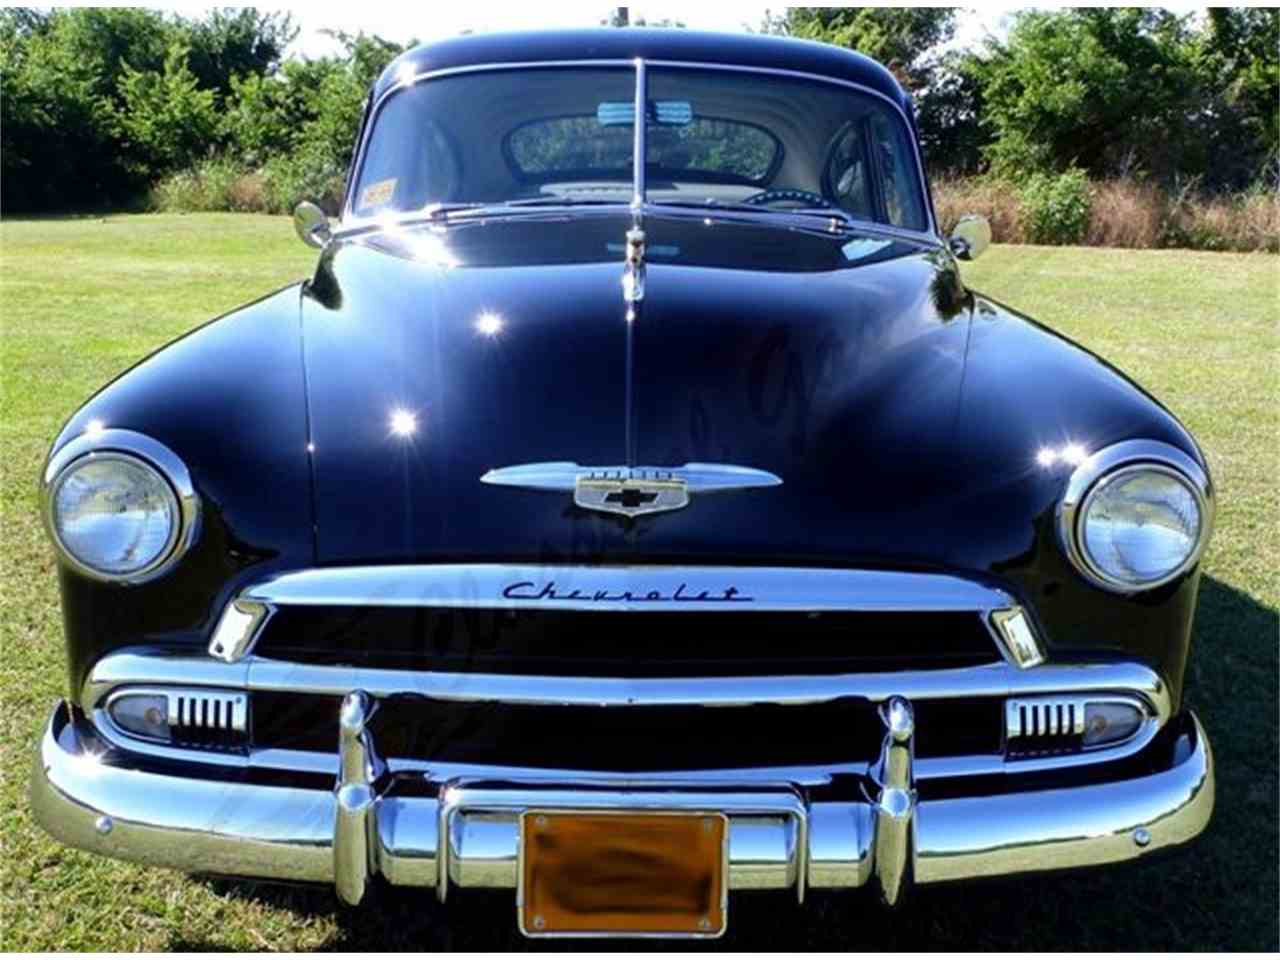 All Chevy 1951 chevrolet fleetline : 1951 Chevrolet Fleetline for Sale | ClassicCars.com | CC-725681